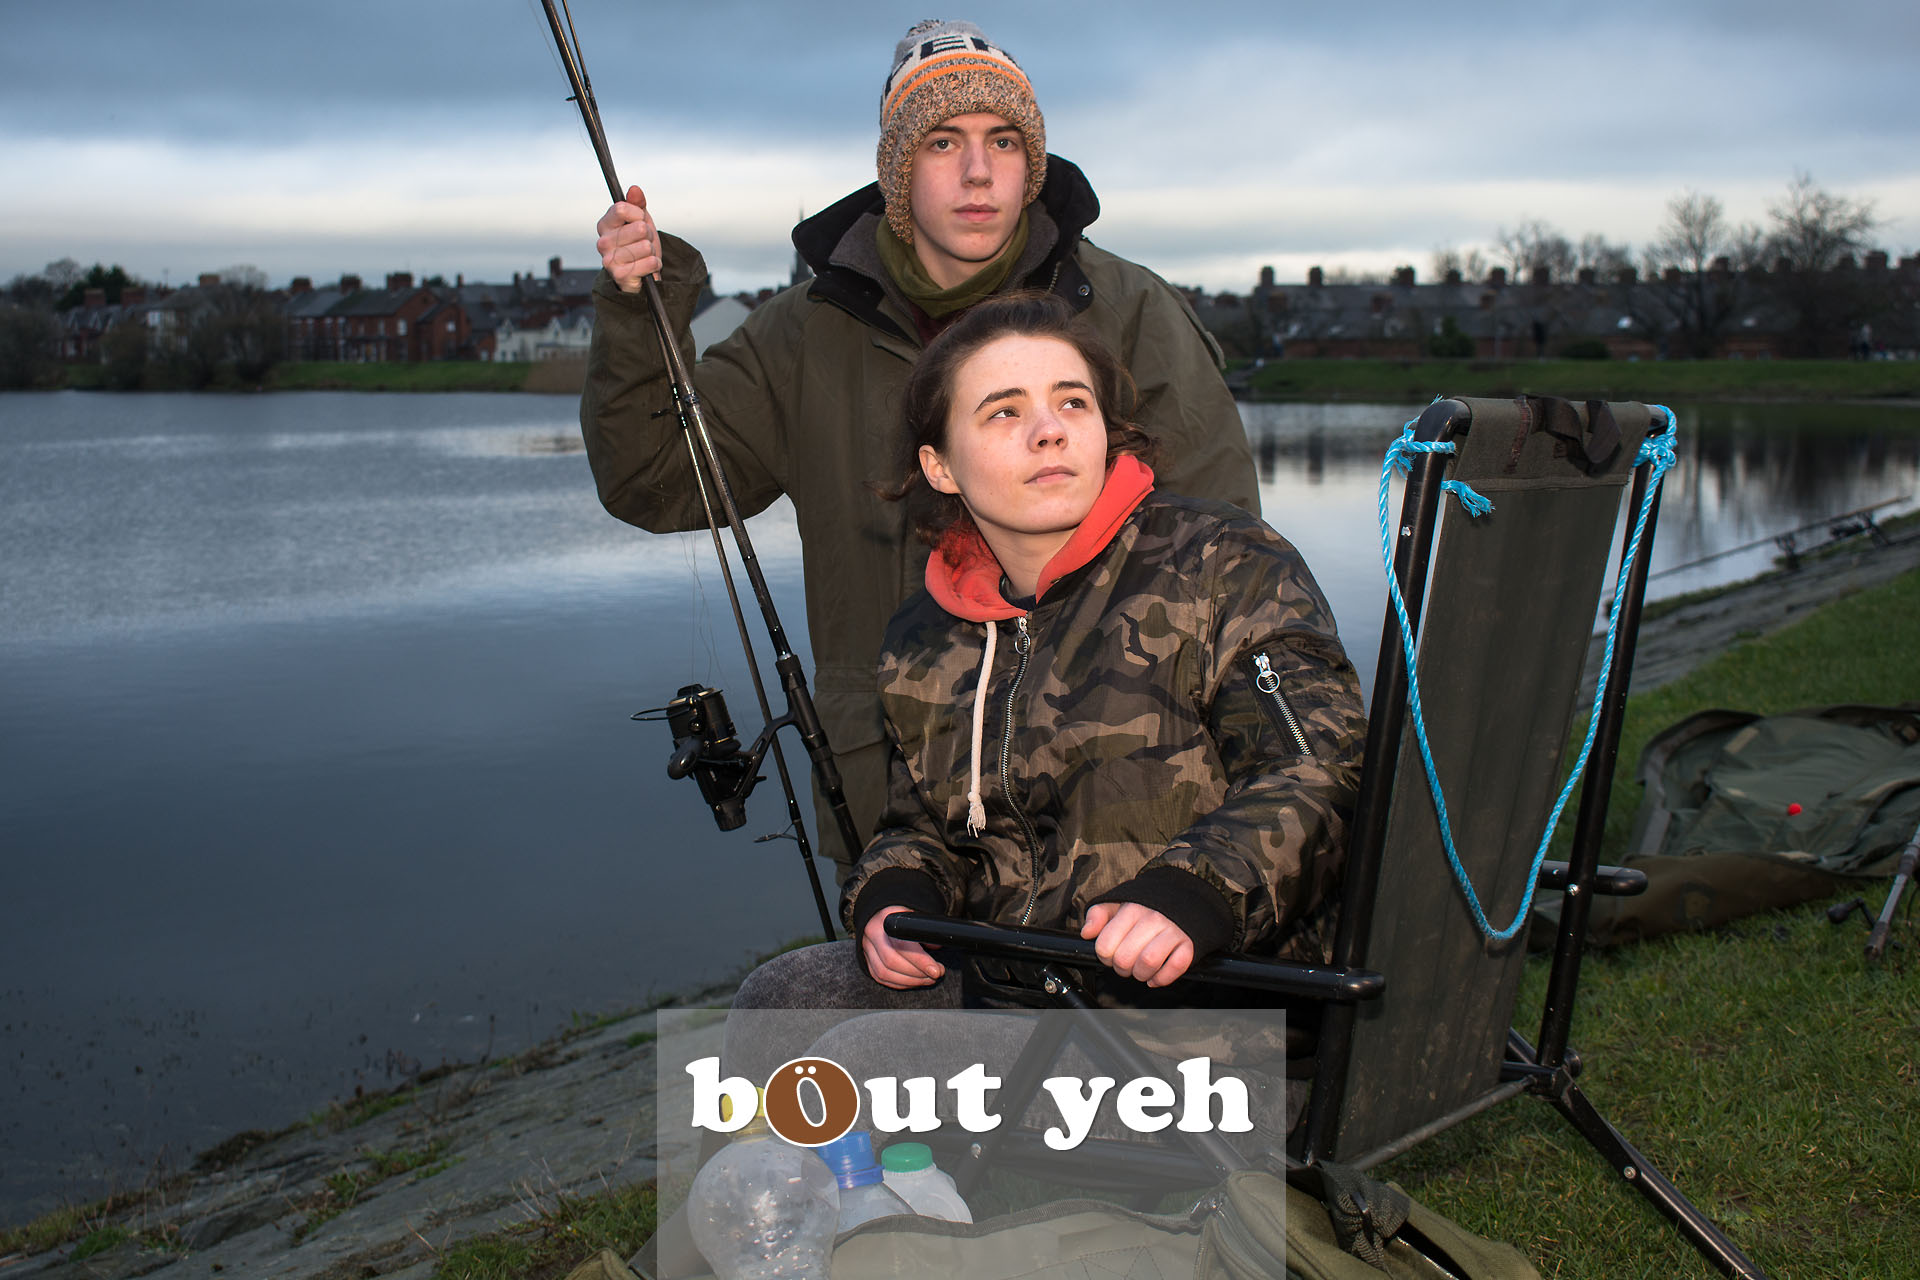 Young couple fishing at Waterworks, Belfast, Northern Ireland - bout yeh photographers Belfast photo 3954.